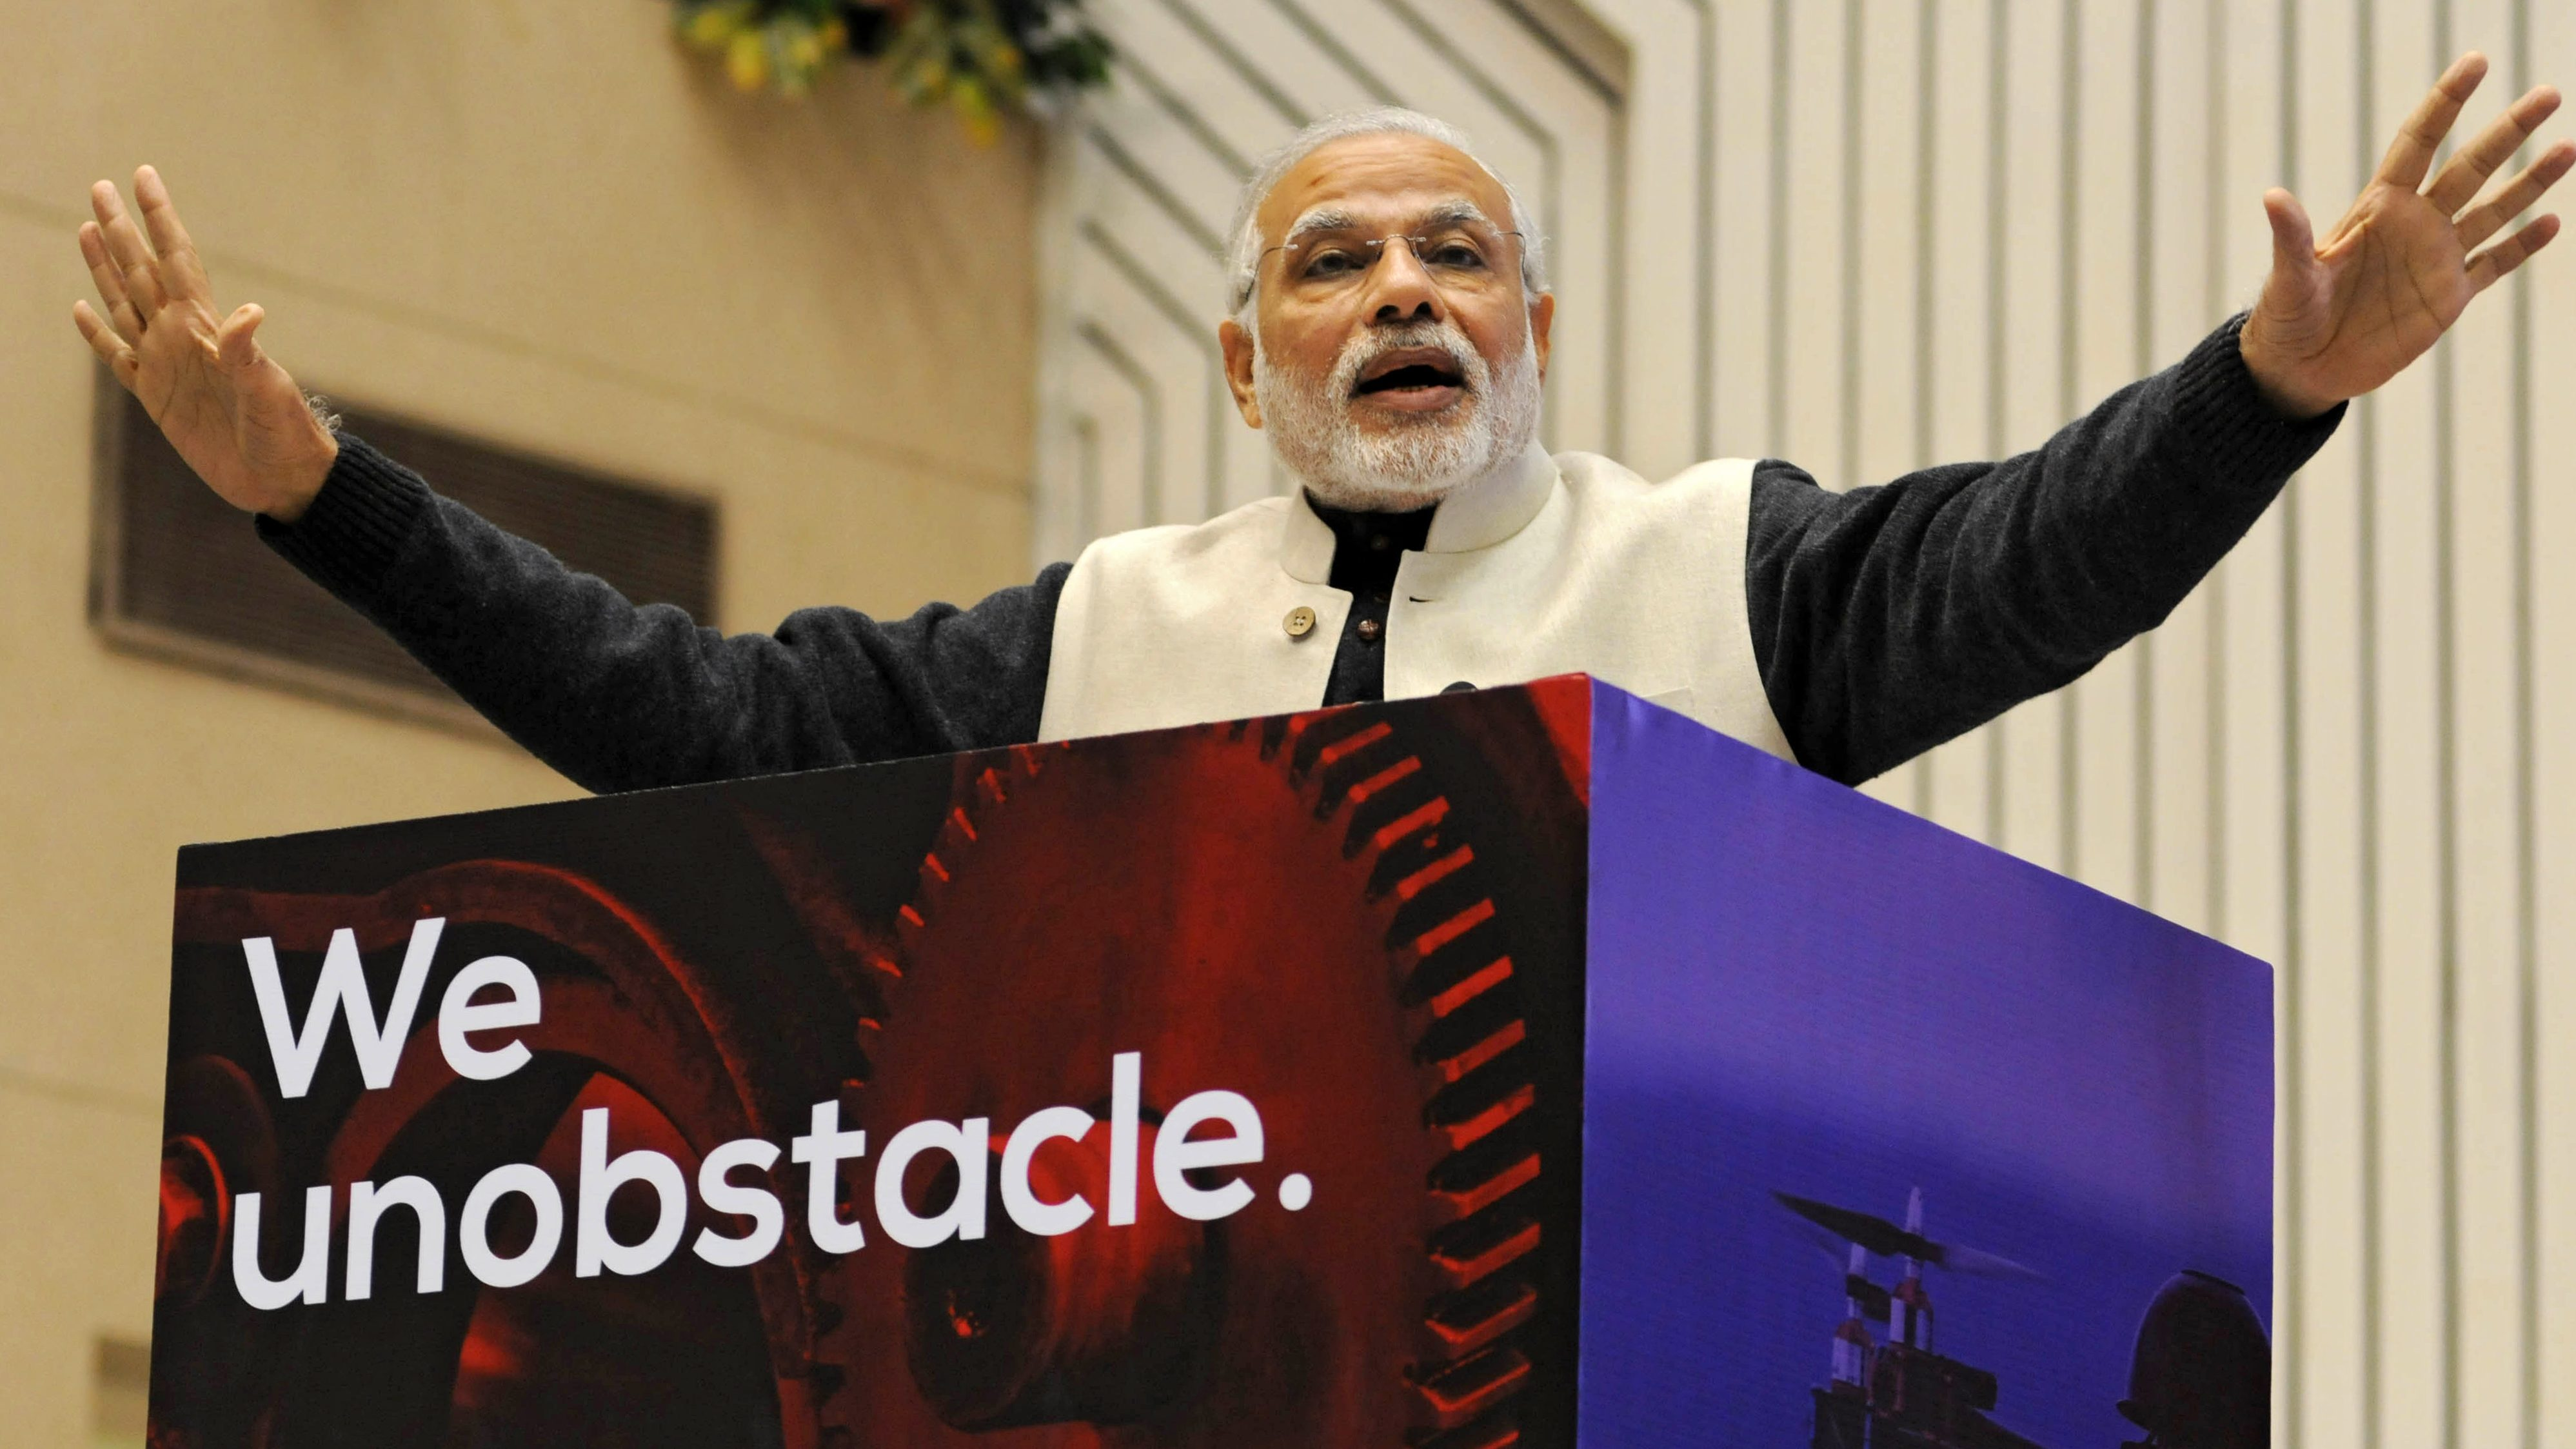 Indian Prime Minister Narendra Modi delivers a speech during 'Start Up India' event to launch the initiative and unveil the startup Action Plan by him in New Delhi, India, 16 January 2016. Centred around the entrepreneurial spirit of India, the Start-Up India plan is expected to boost the entrepreneurship in the country. The Indian government said it will introduce friendly tax measures and easy financing for start-ups to boost entrepreneurship at the grass-root level. With 4,200 firms, India already ranks third in the world in terms of the number of start-ups, behind the United States and Britain.  EPA/STR